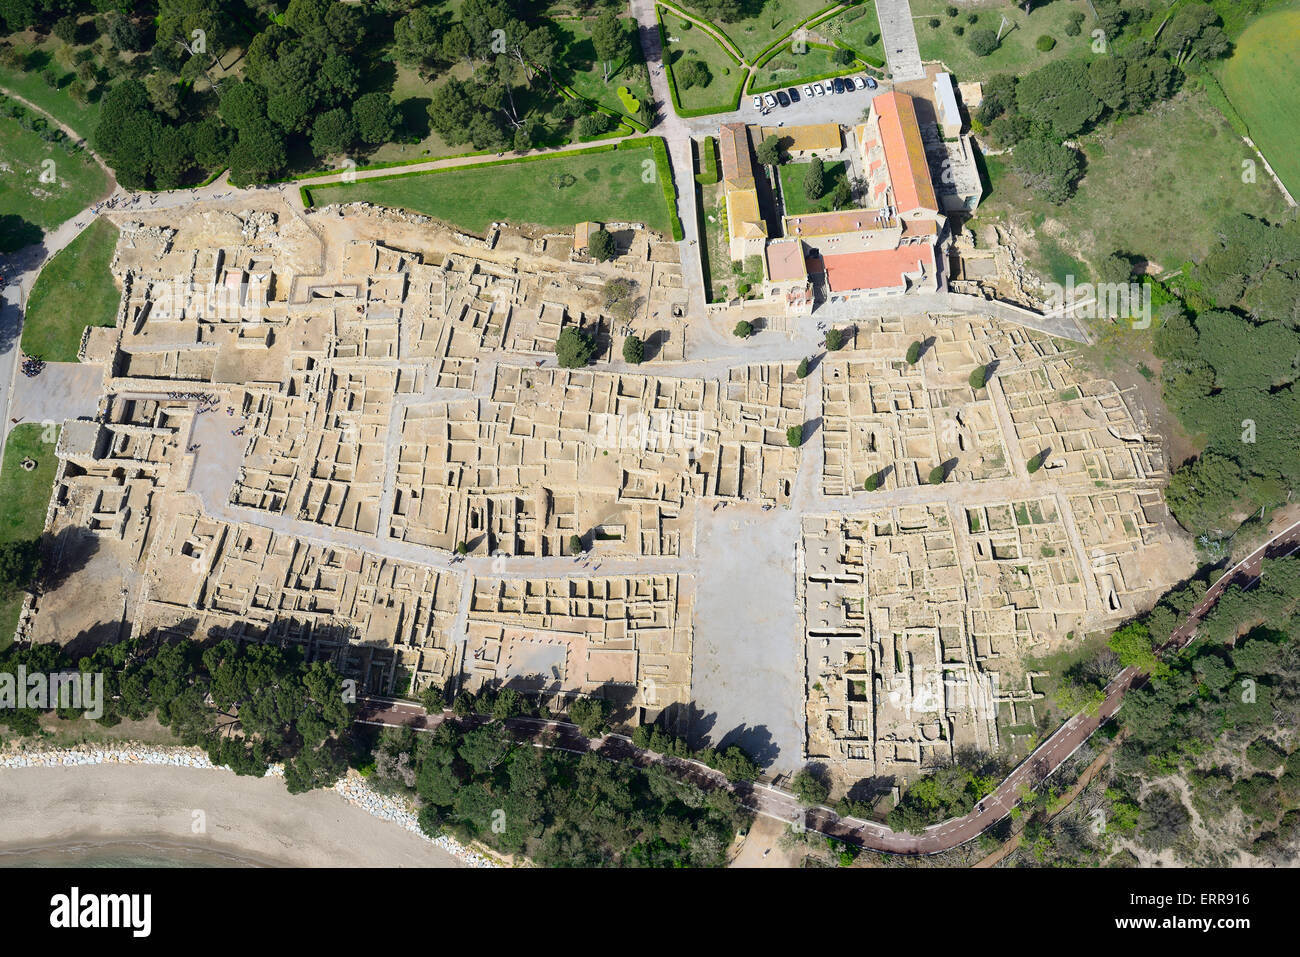 ANCIENT GREEK CITY (aerial view). Empuries, L'Escala, Costa Brava, Catalonia, Spain. - Stock Image